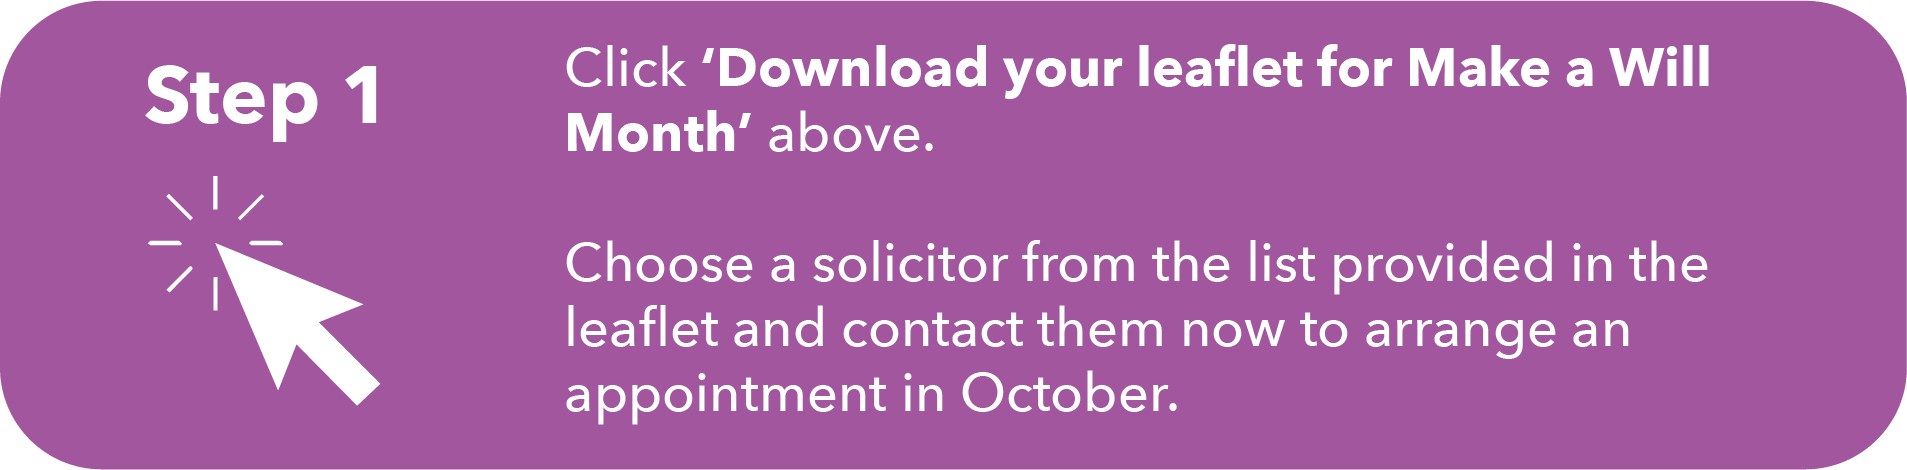 Image with written instructions. Step 1: Click 'Download your leaflet for Make a Will Month' above. Choose a solicitor from the list provided in the leaflet and contact them now to arrange an appointment in October.